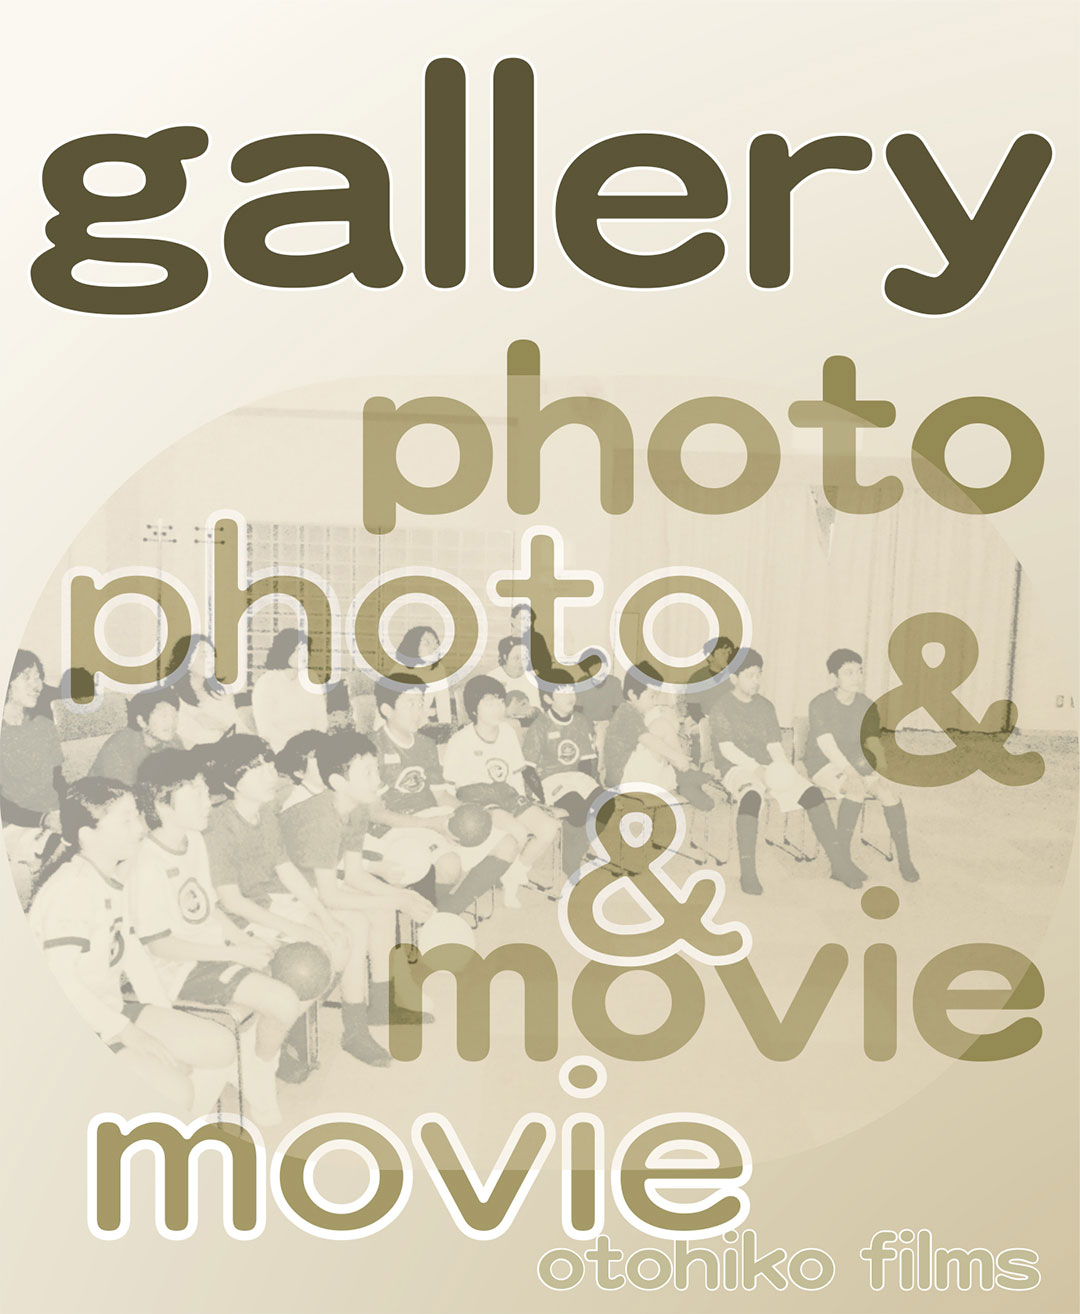 gallery|photo&movie